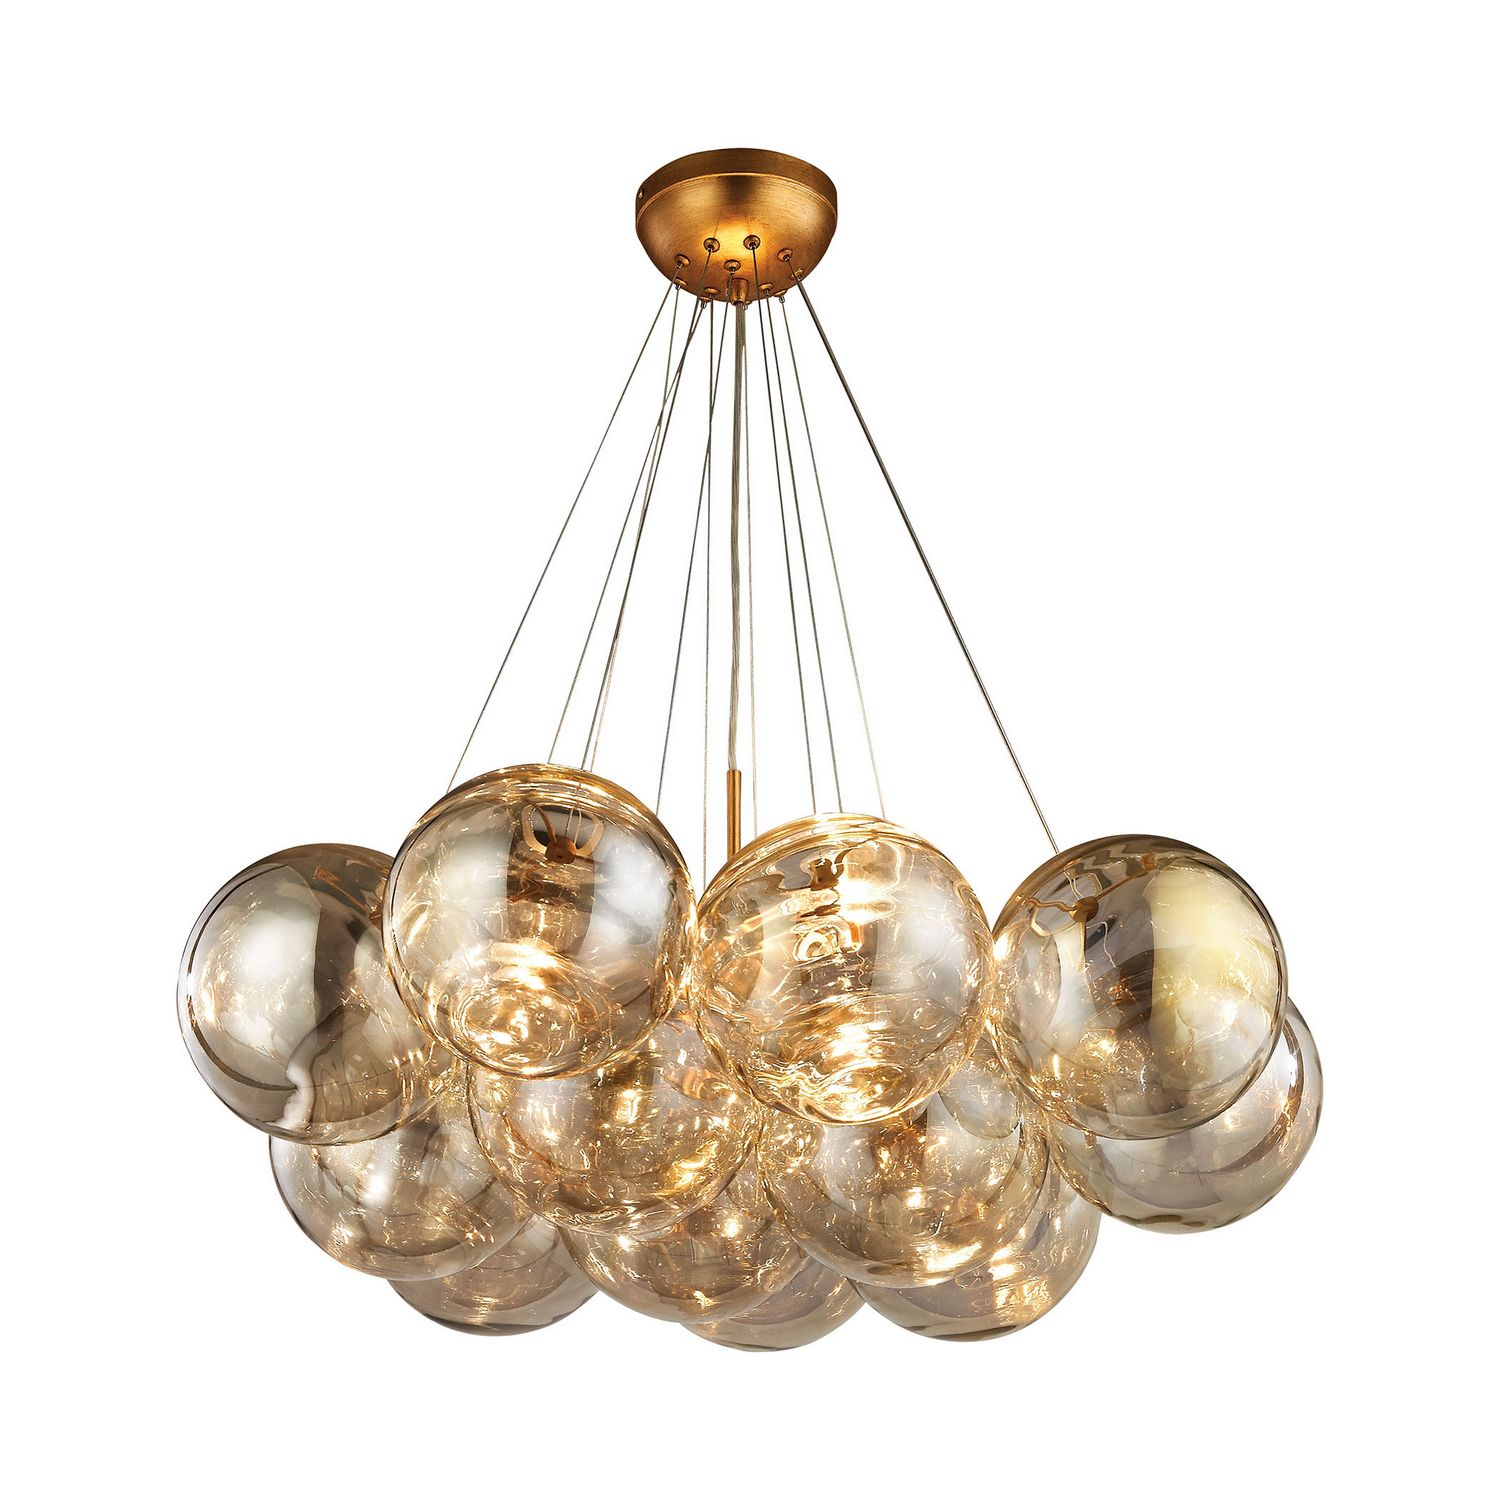 Three Light Chandelier - Cielo Collection - Antique Gold Leaf (also available ORB)